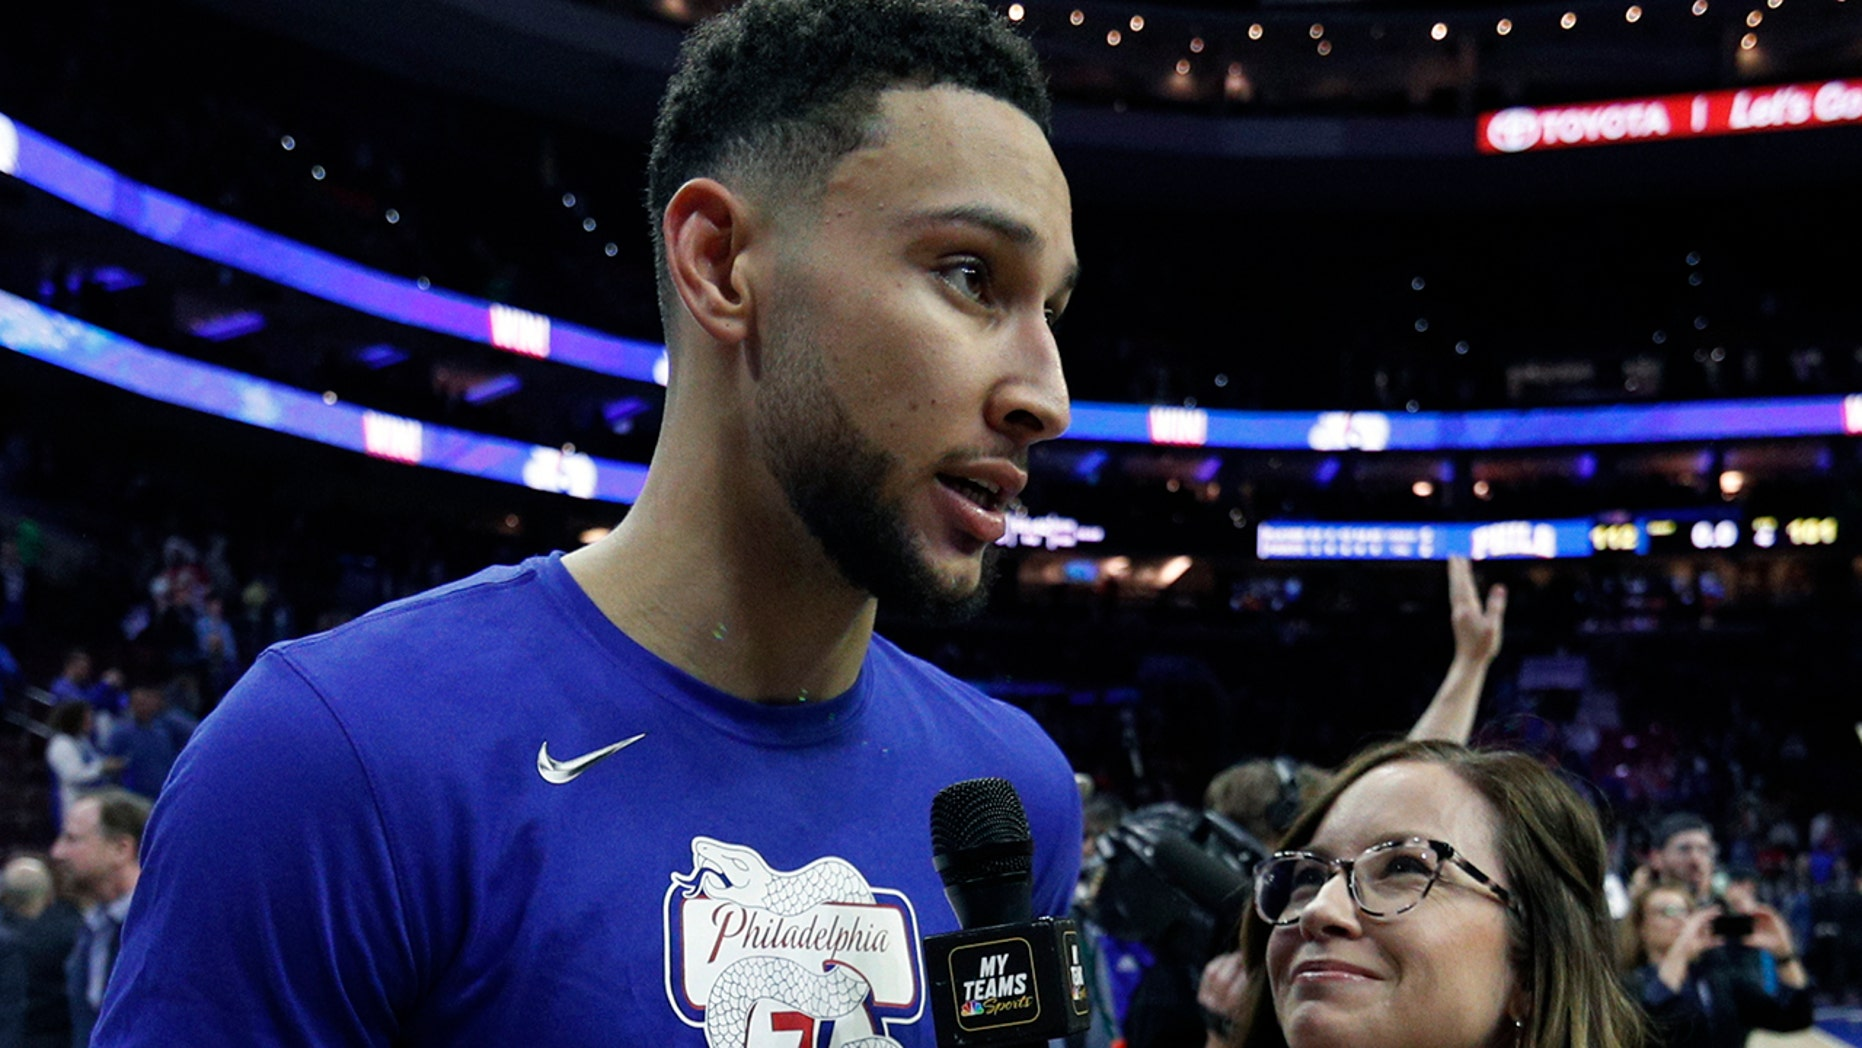 FILE - In this May 9, 2019, file photo, Philadelphia 76ers' Ben Simmons interviewed by 76ers sideline reporter Serena Winters following the second half of Game 6 of a second-round NBA basketball playoff series against the Toronto Raptors, in Philadelphia. (AP Photo/Chris Szagola, File)